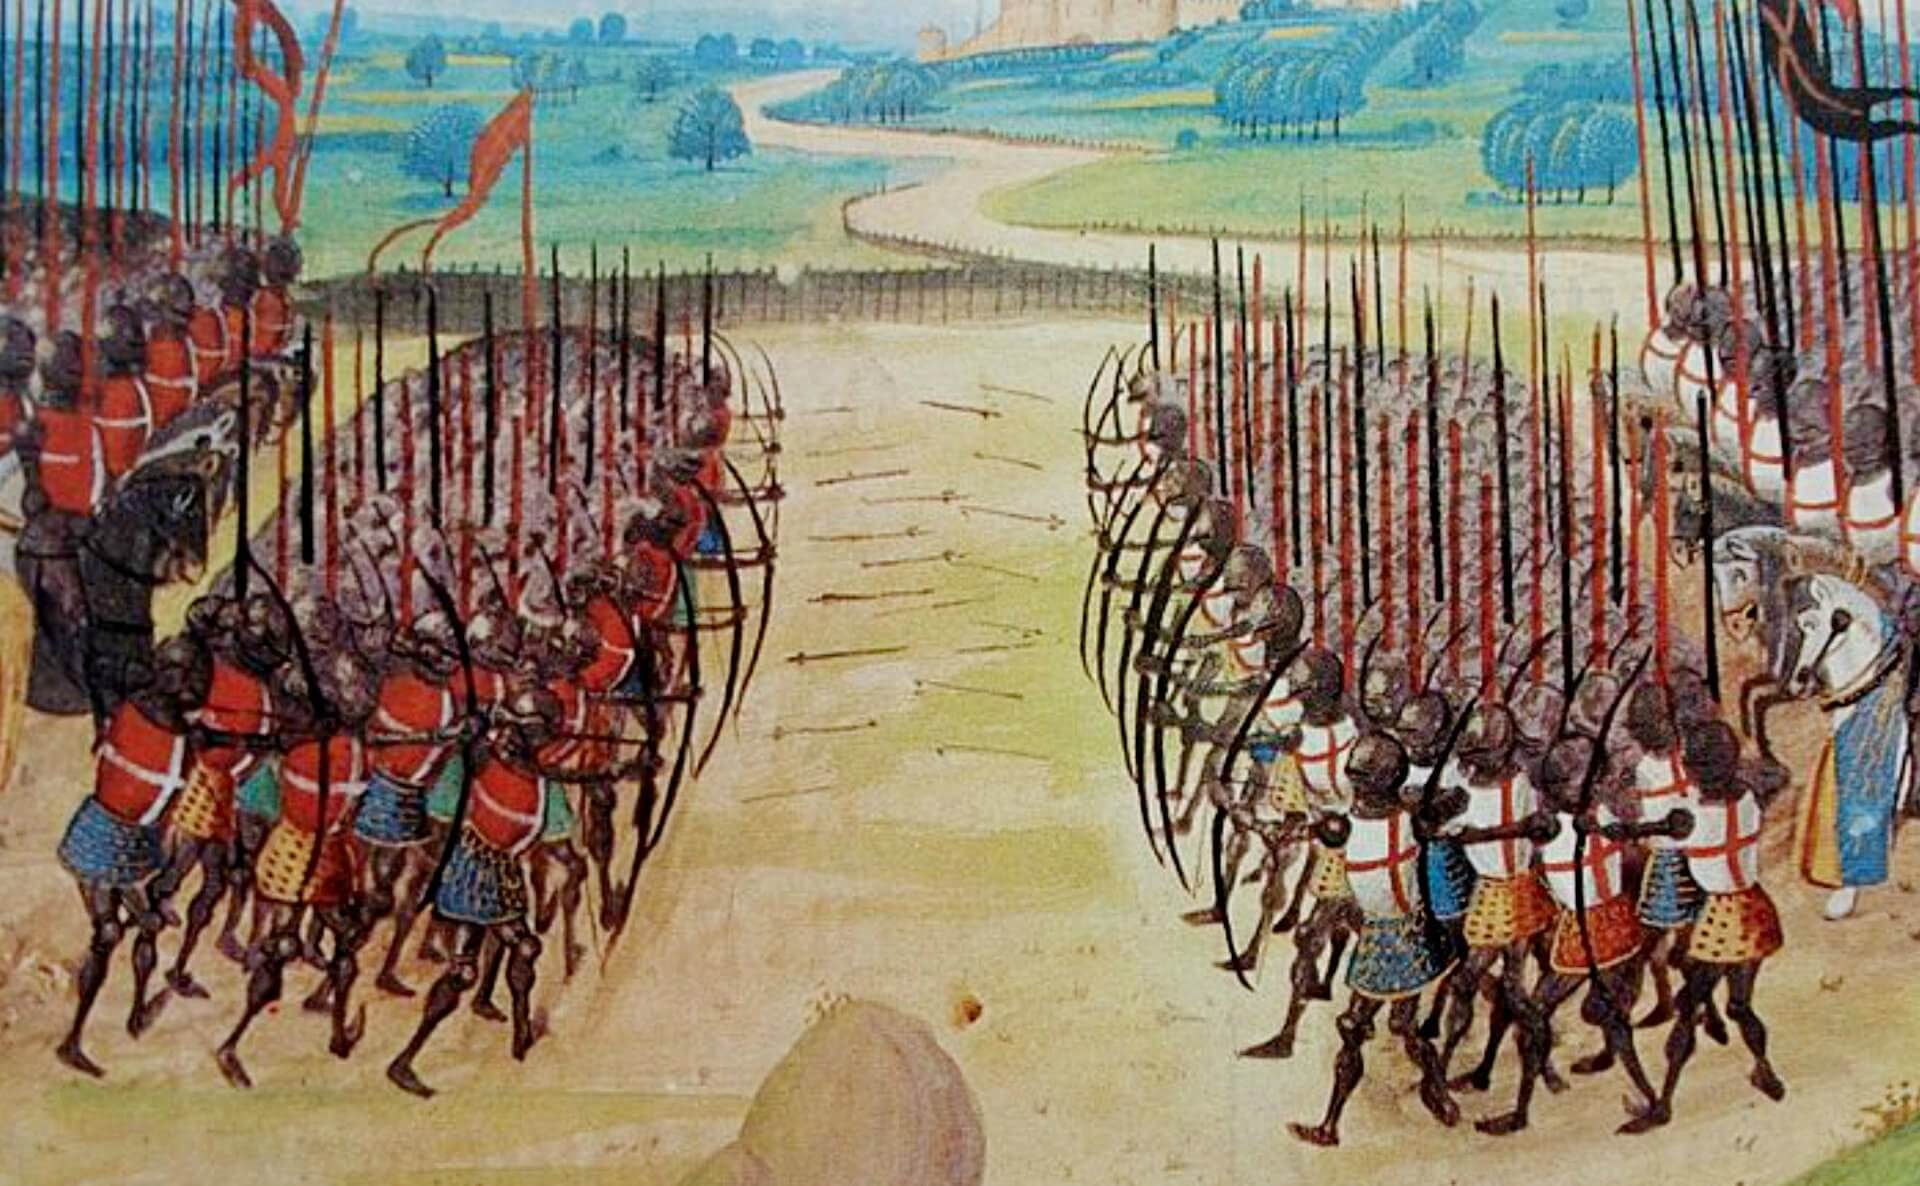 Agincourt or Azincourt? Victory, Defeat, and the War of 1415